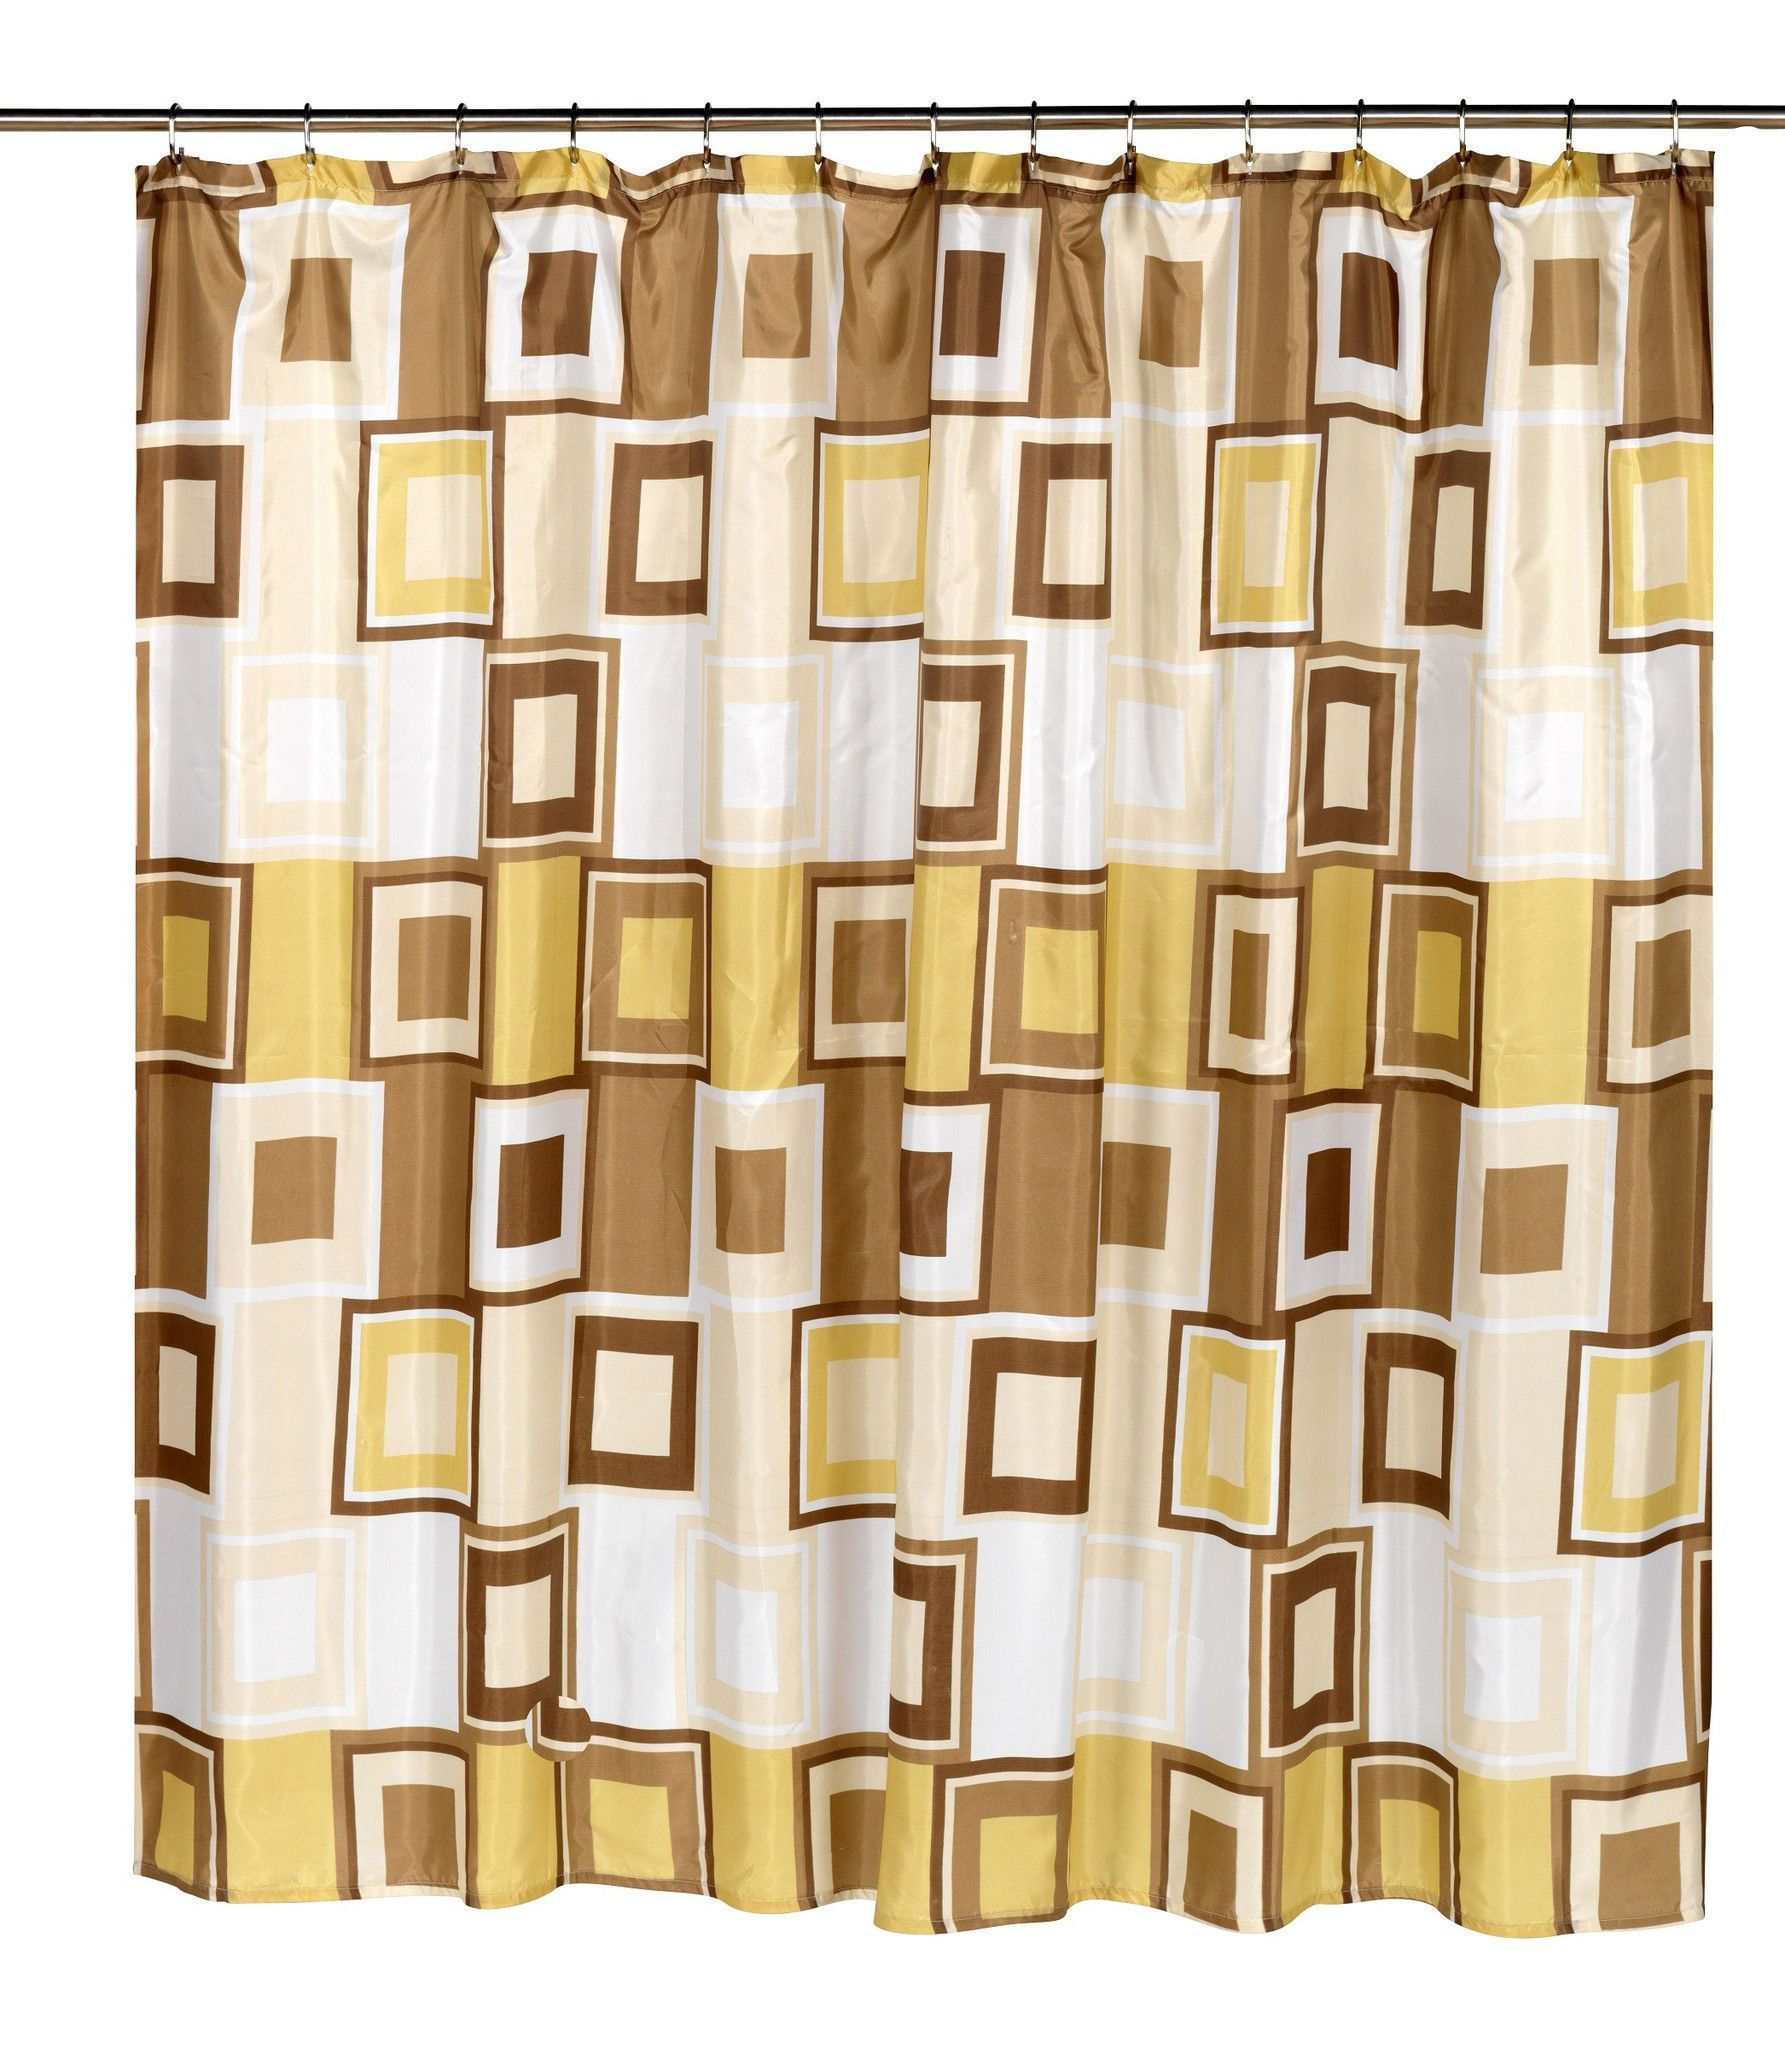 Royal bath extra wide water repellant fabric shower curtain liner